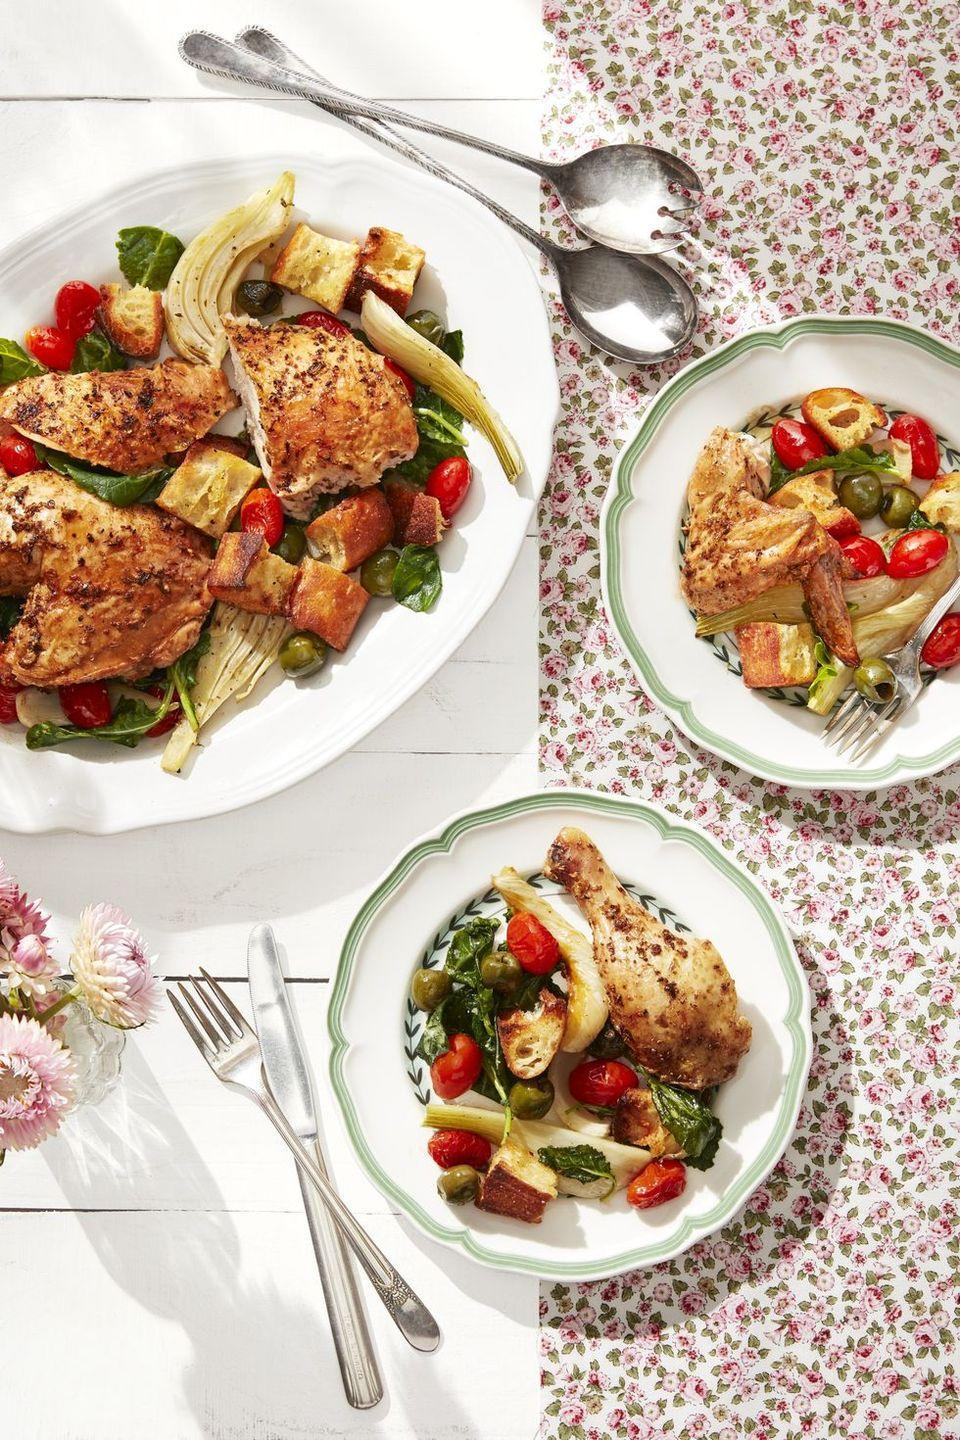 """<p>Think of roasted chicken, with its crispy skin, as the adult-pleasing alternative to chicken nuggets. If you can get your picky eaters to go for a bit of mild roasted fennel and a tomato or two, all the better. </p><p><strong><a href=""""https://www.countryliving.com/food-drinks/a30613306/roasted-chicken-with-fennel-tomatoes-recipe/"""" rel=""""nofollow noopener"""" target=""""_blank"""" data-ylk=""""slk:Get the recipe"""" class=""""link rapid-noclick-resp"""">Get the recipe</a>.</strong></p><p><a class=""""link rapid-noclick-resp"""" href=""""https://www.amazon.com/Nordic-Ware-Natural-Aluminum-Commercial/dp/B0049C2S32/?tag=syn-yahoo-20&ascsubtag=%5Bartid%7C10050.g.4772%5Bsrc%7Cyahoo-us"""" rel=""""nofollow noopener"""" target=""""_blank"""" data-ylk=""""slk:SHOP BAKING SHEETS"""">SHOP BAKING SHEETS</a></p>"""